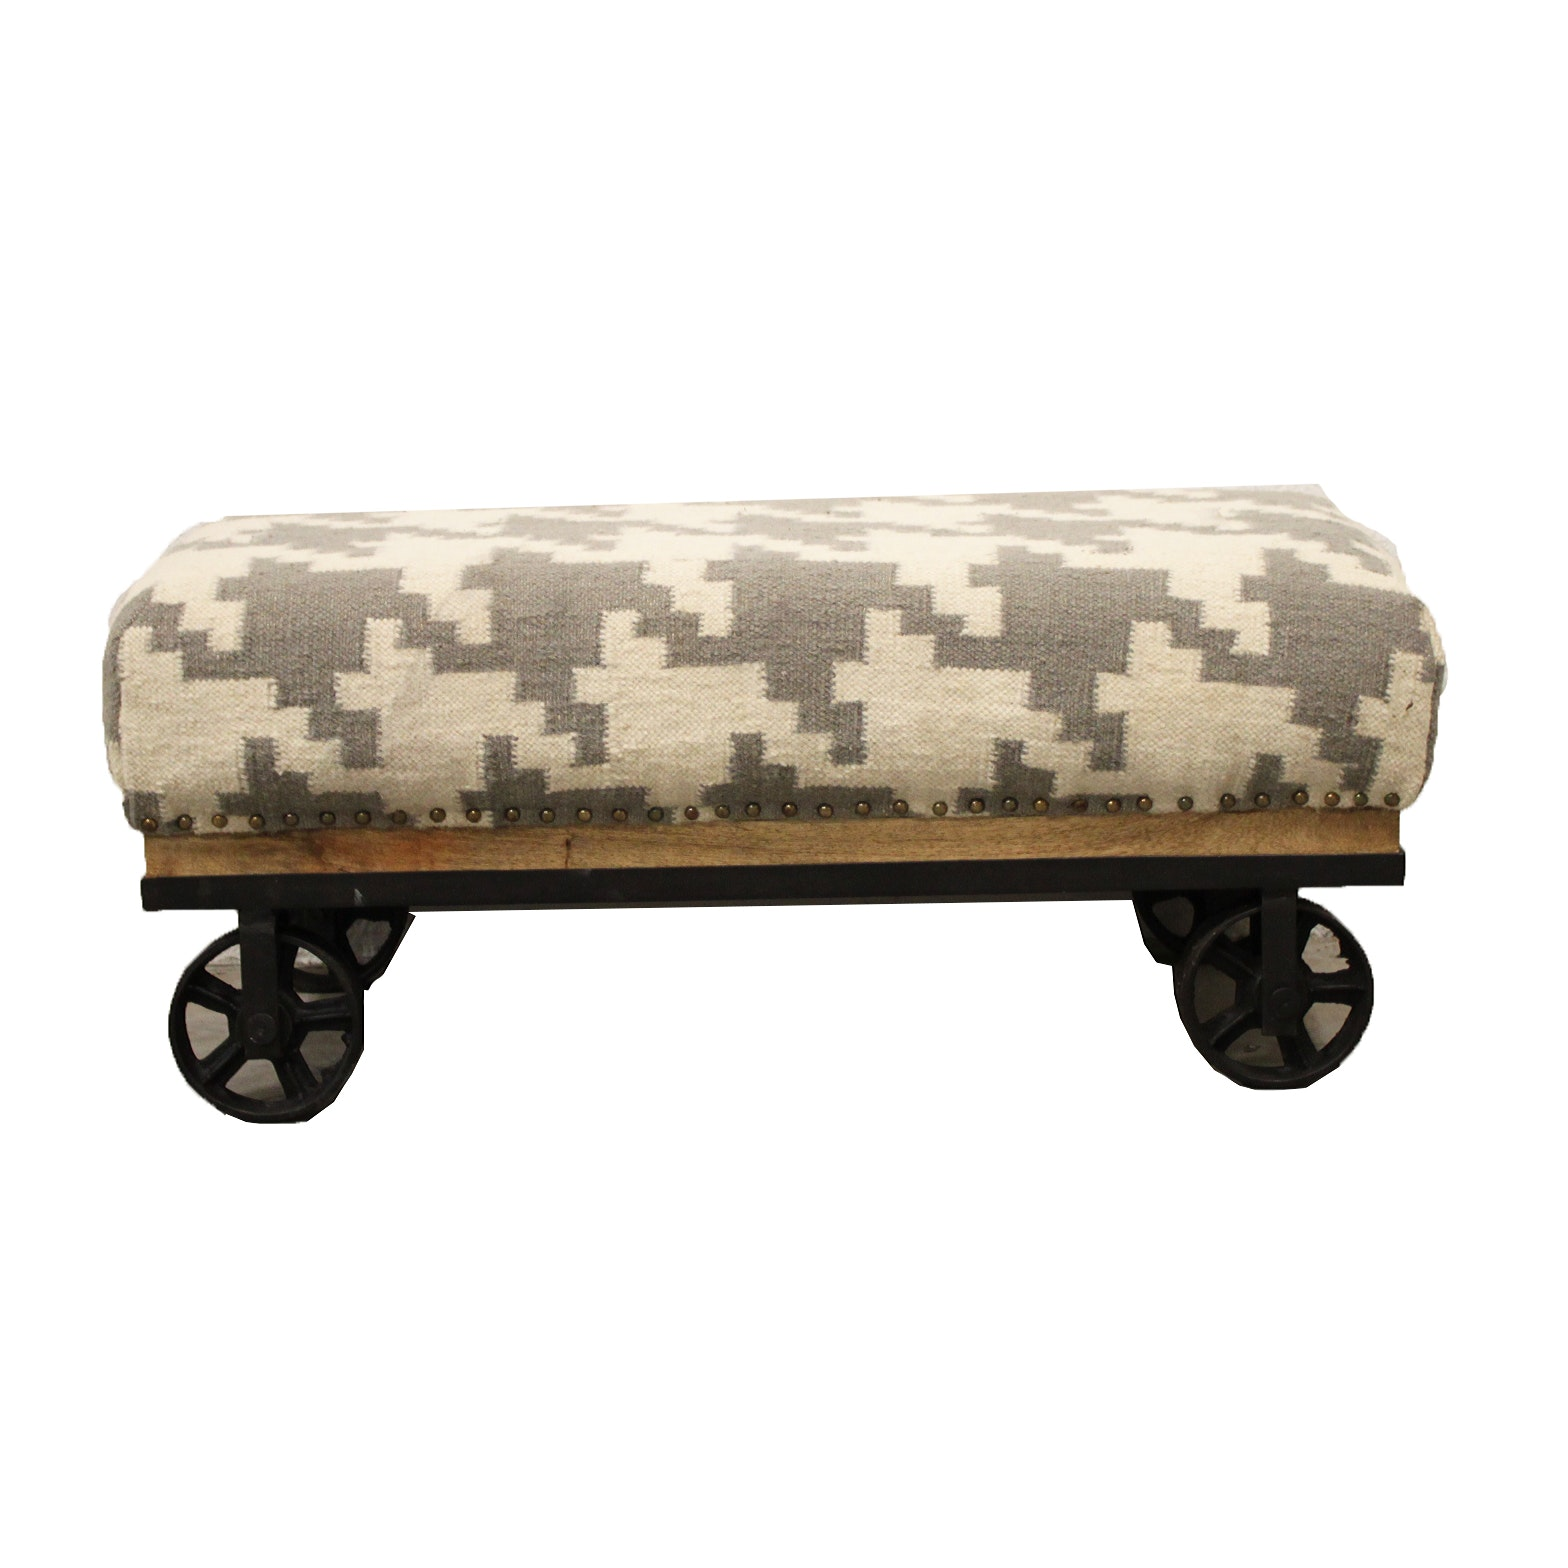 Industrial Style Rolling Ottoman with Wool Blend Upholstery